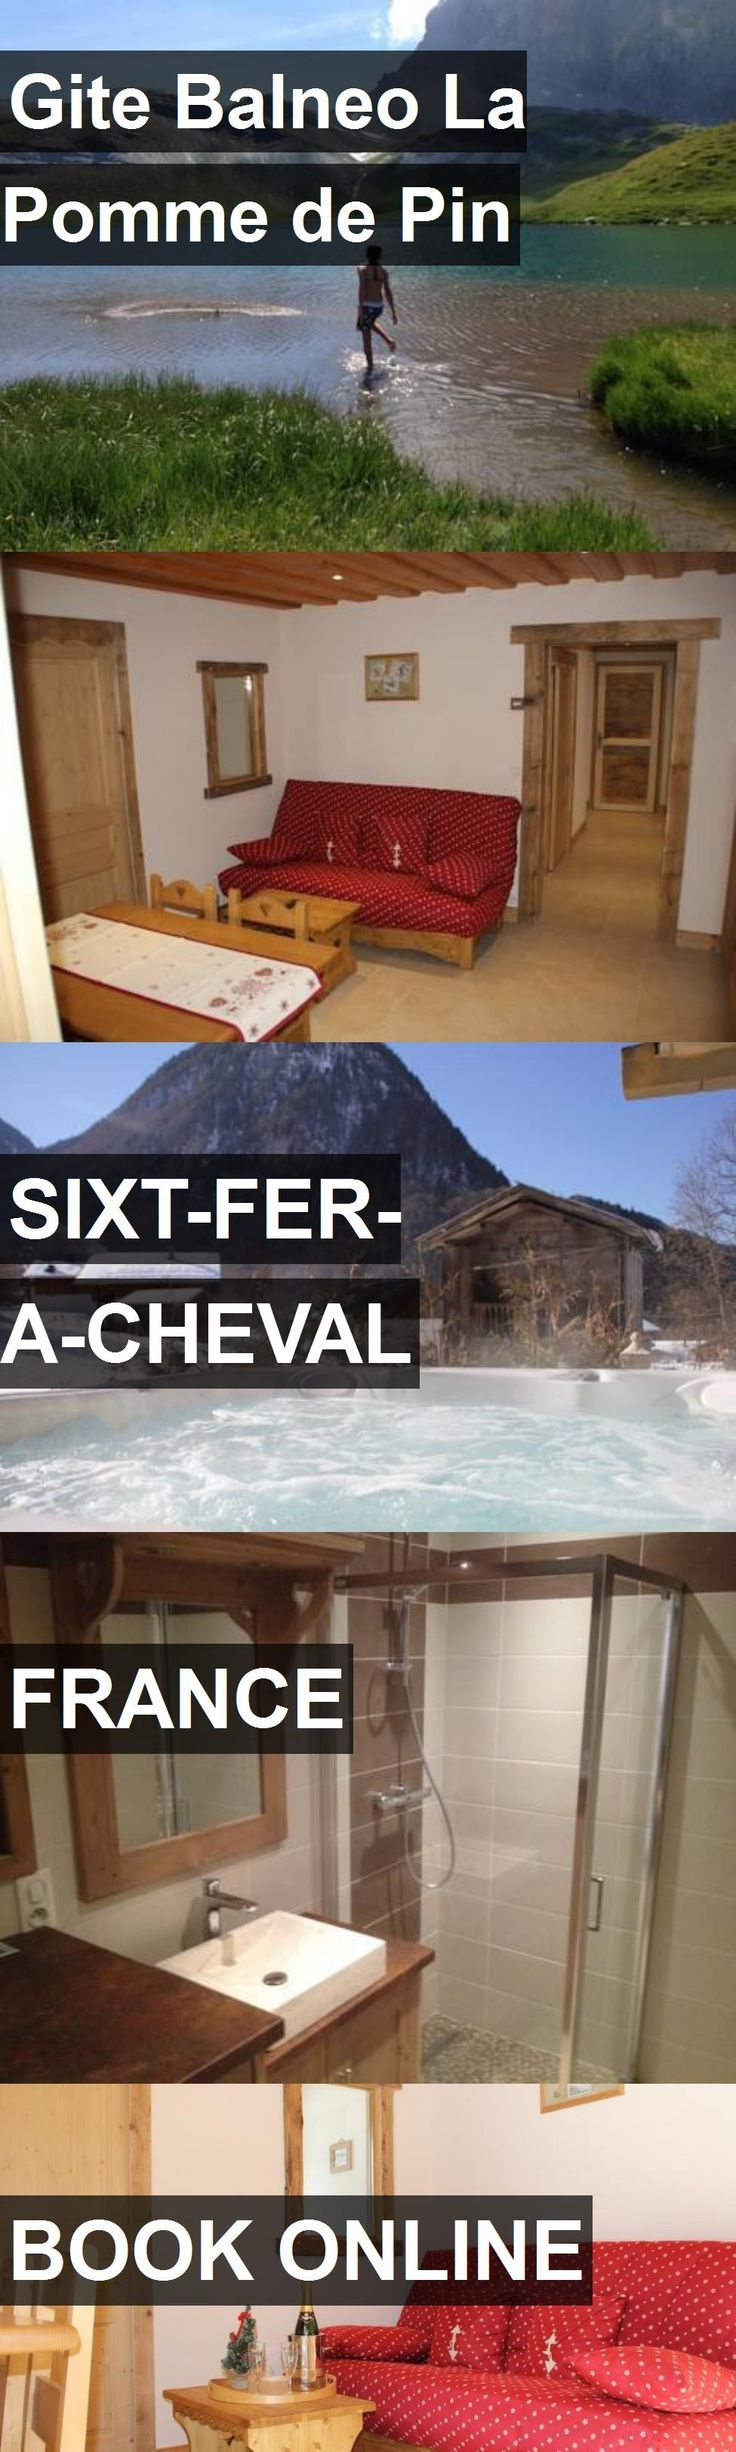 Hotel Gite Balneo La Pomme de Pin in Sixt-Fer-a-Cheval, France. For more information, photos, reviews and best prices please follow the link. #France #Sixt-Fer-a-Cheval #travel #vacation #hotel